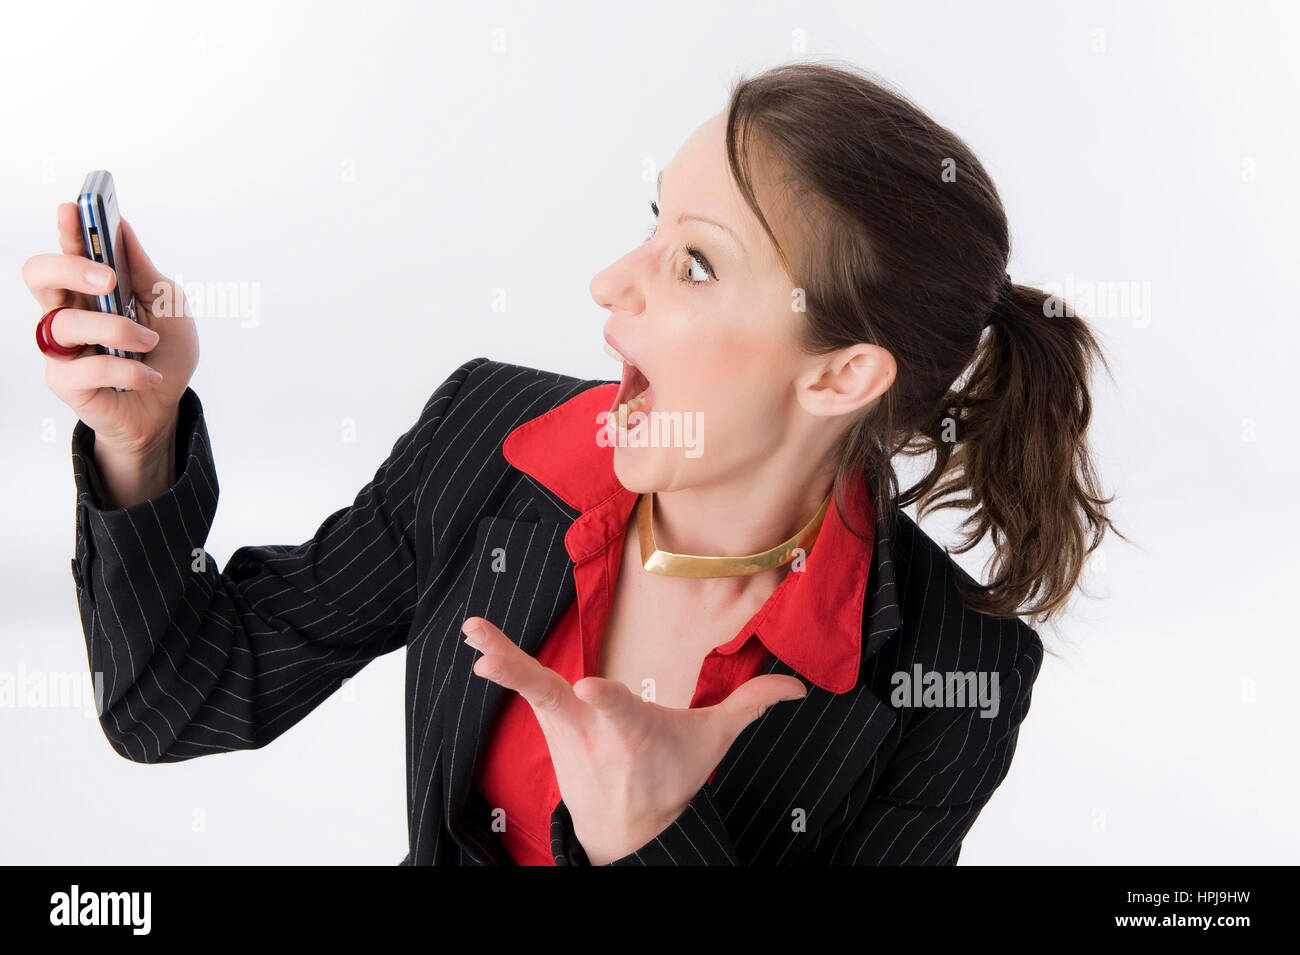 Model released , Schreiende Geschaeftsfrau mit Handy - Screaming business woman with mobile phone Stock Photo